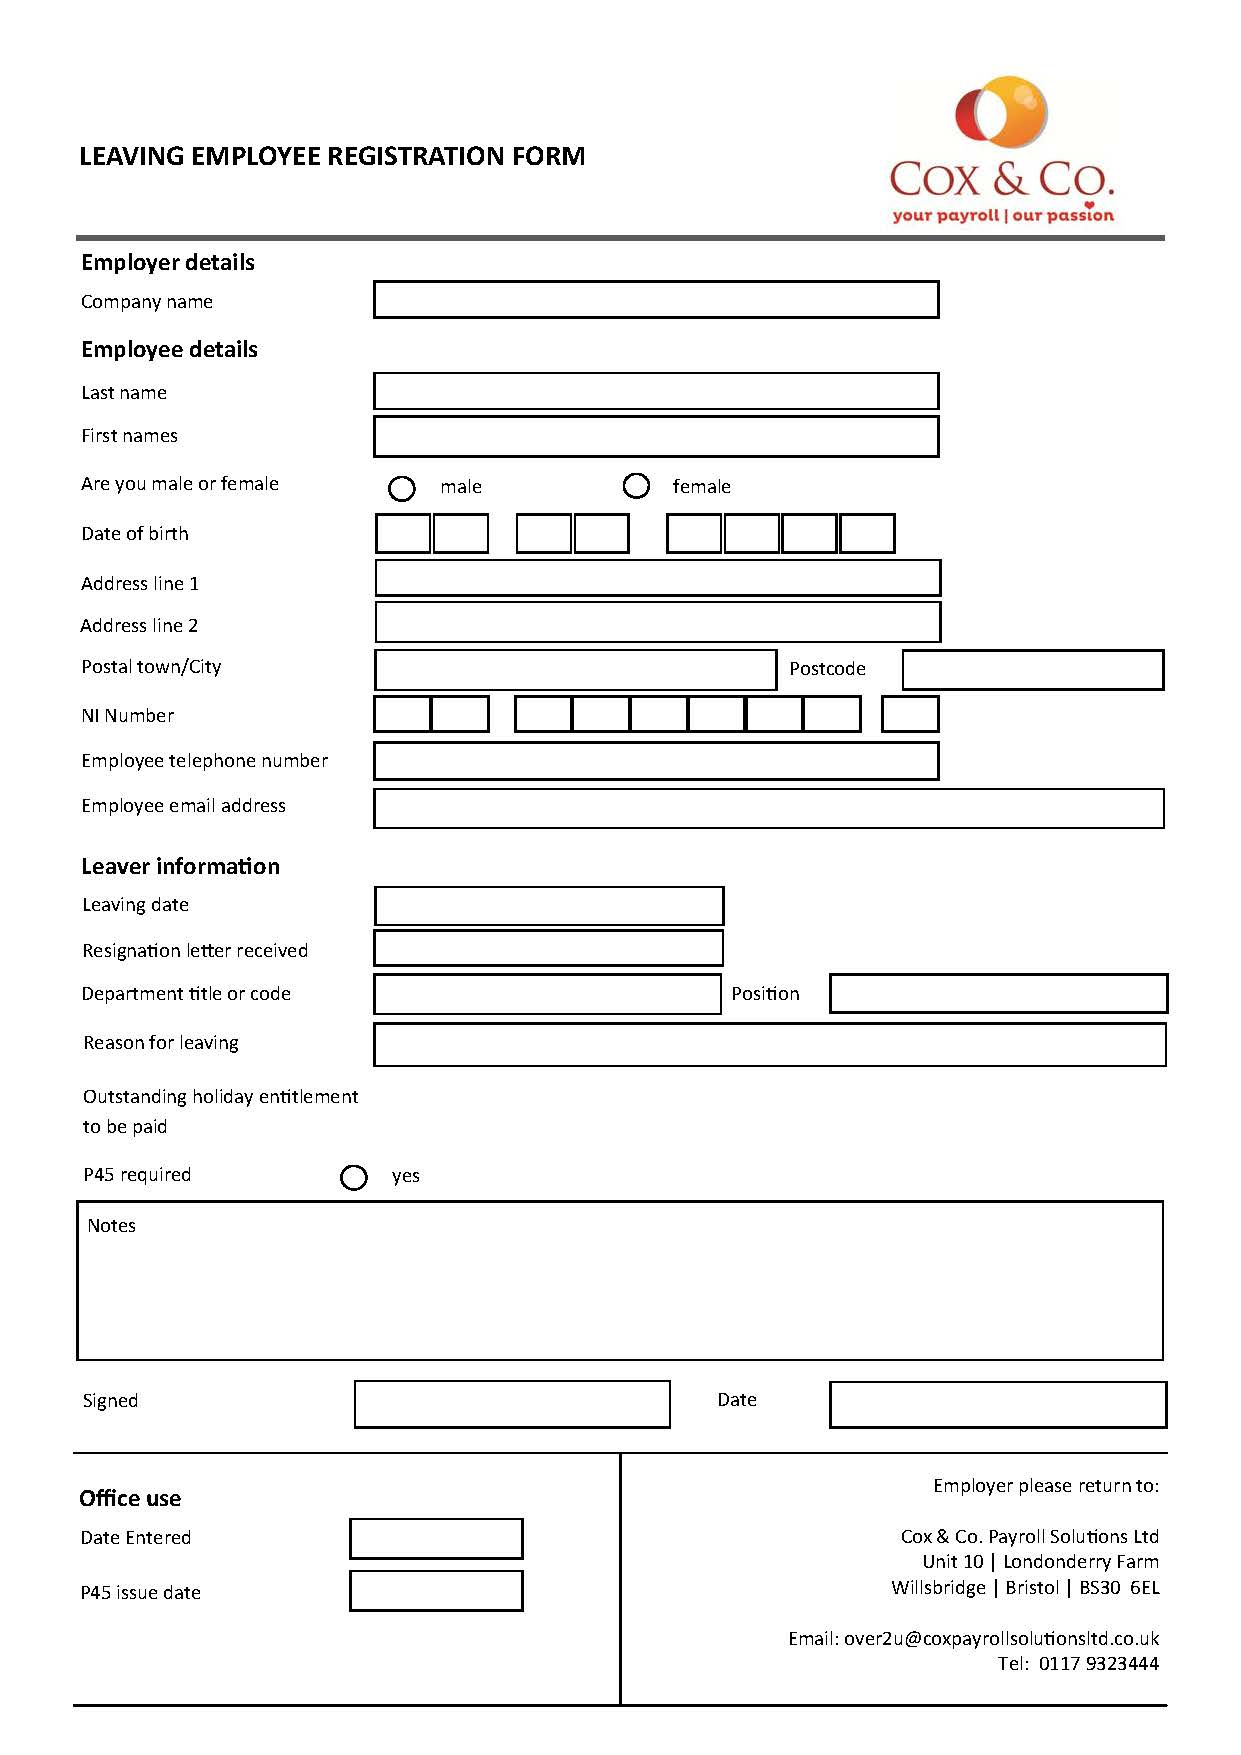 Payroll forms - Cox & Co